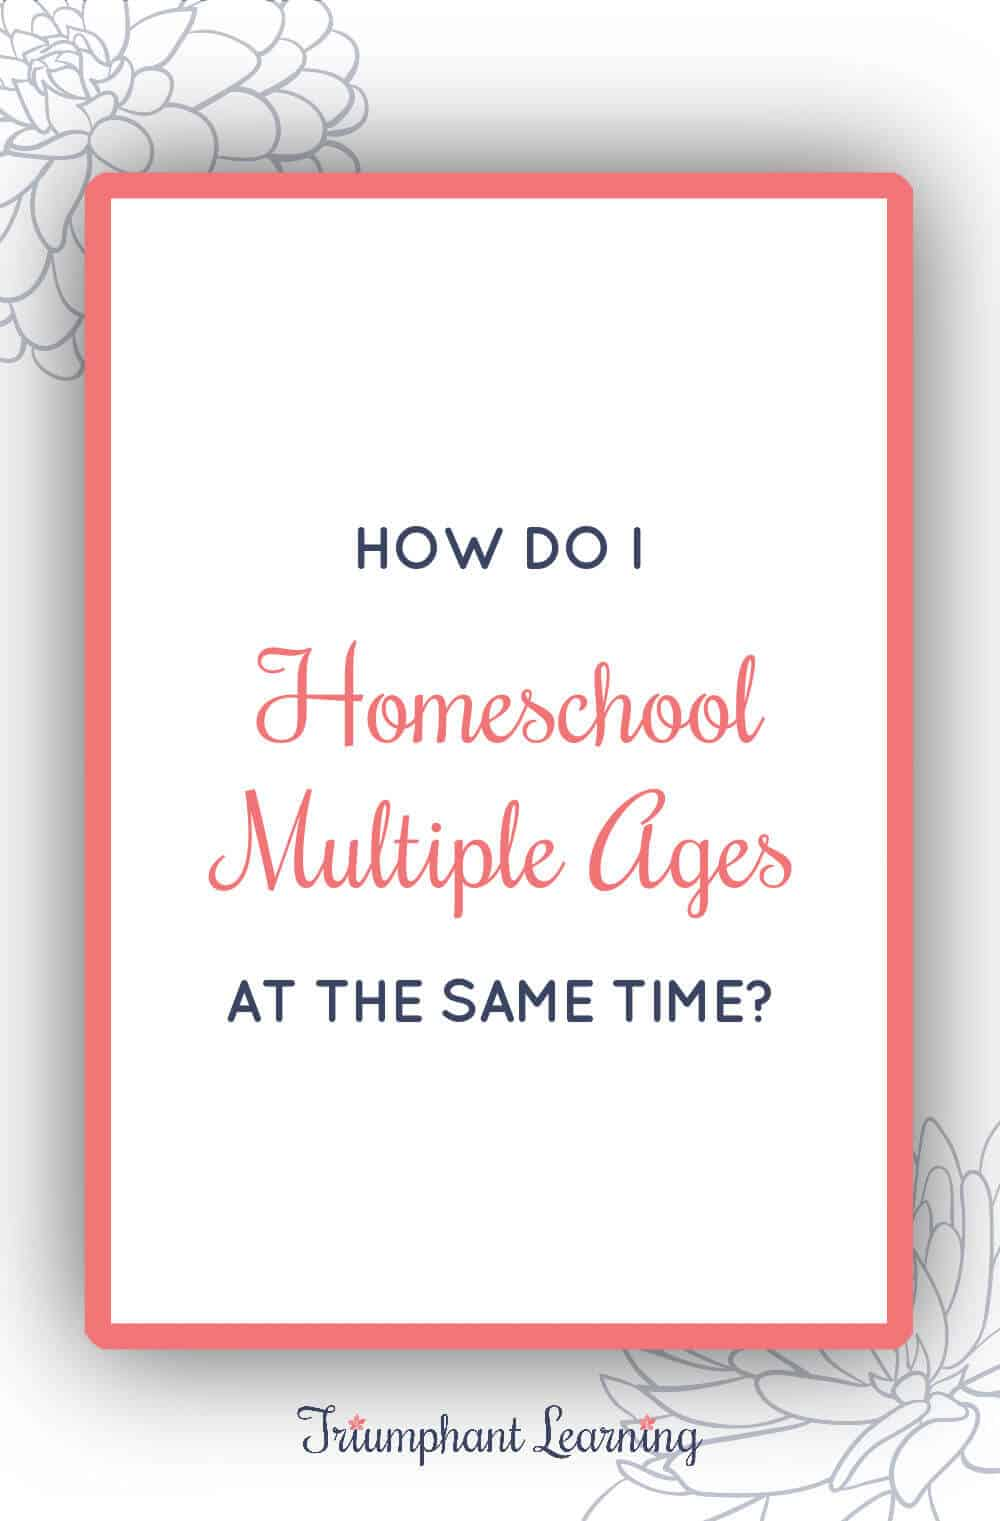 It can feel overwhelming to think about teaching multiple children at the same time. Learn two tips to homeschool multiple ages without losing your mind. via @TriLearning